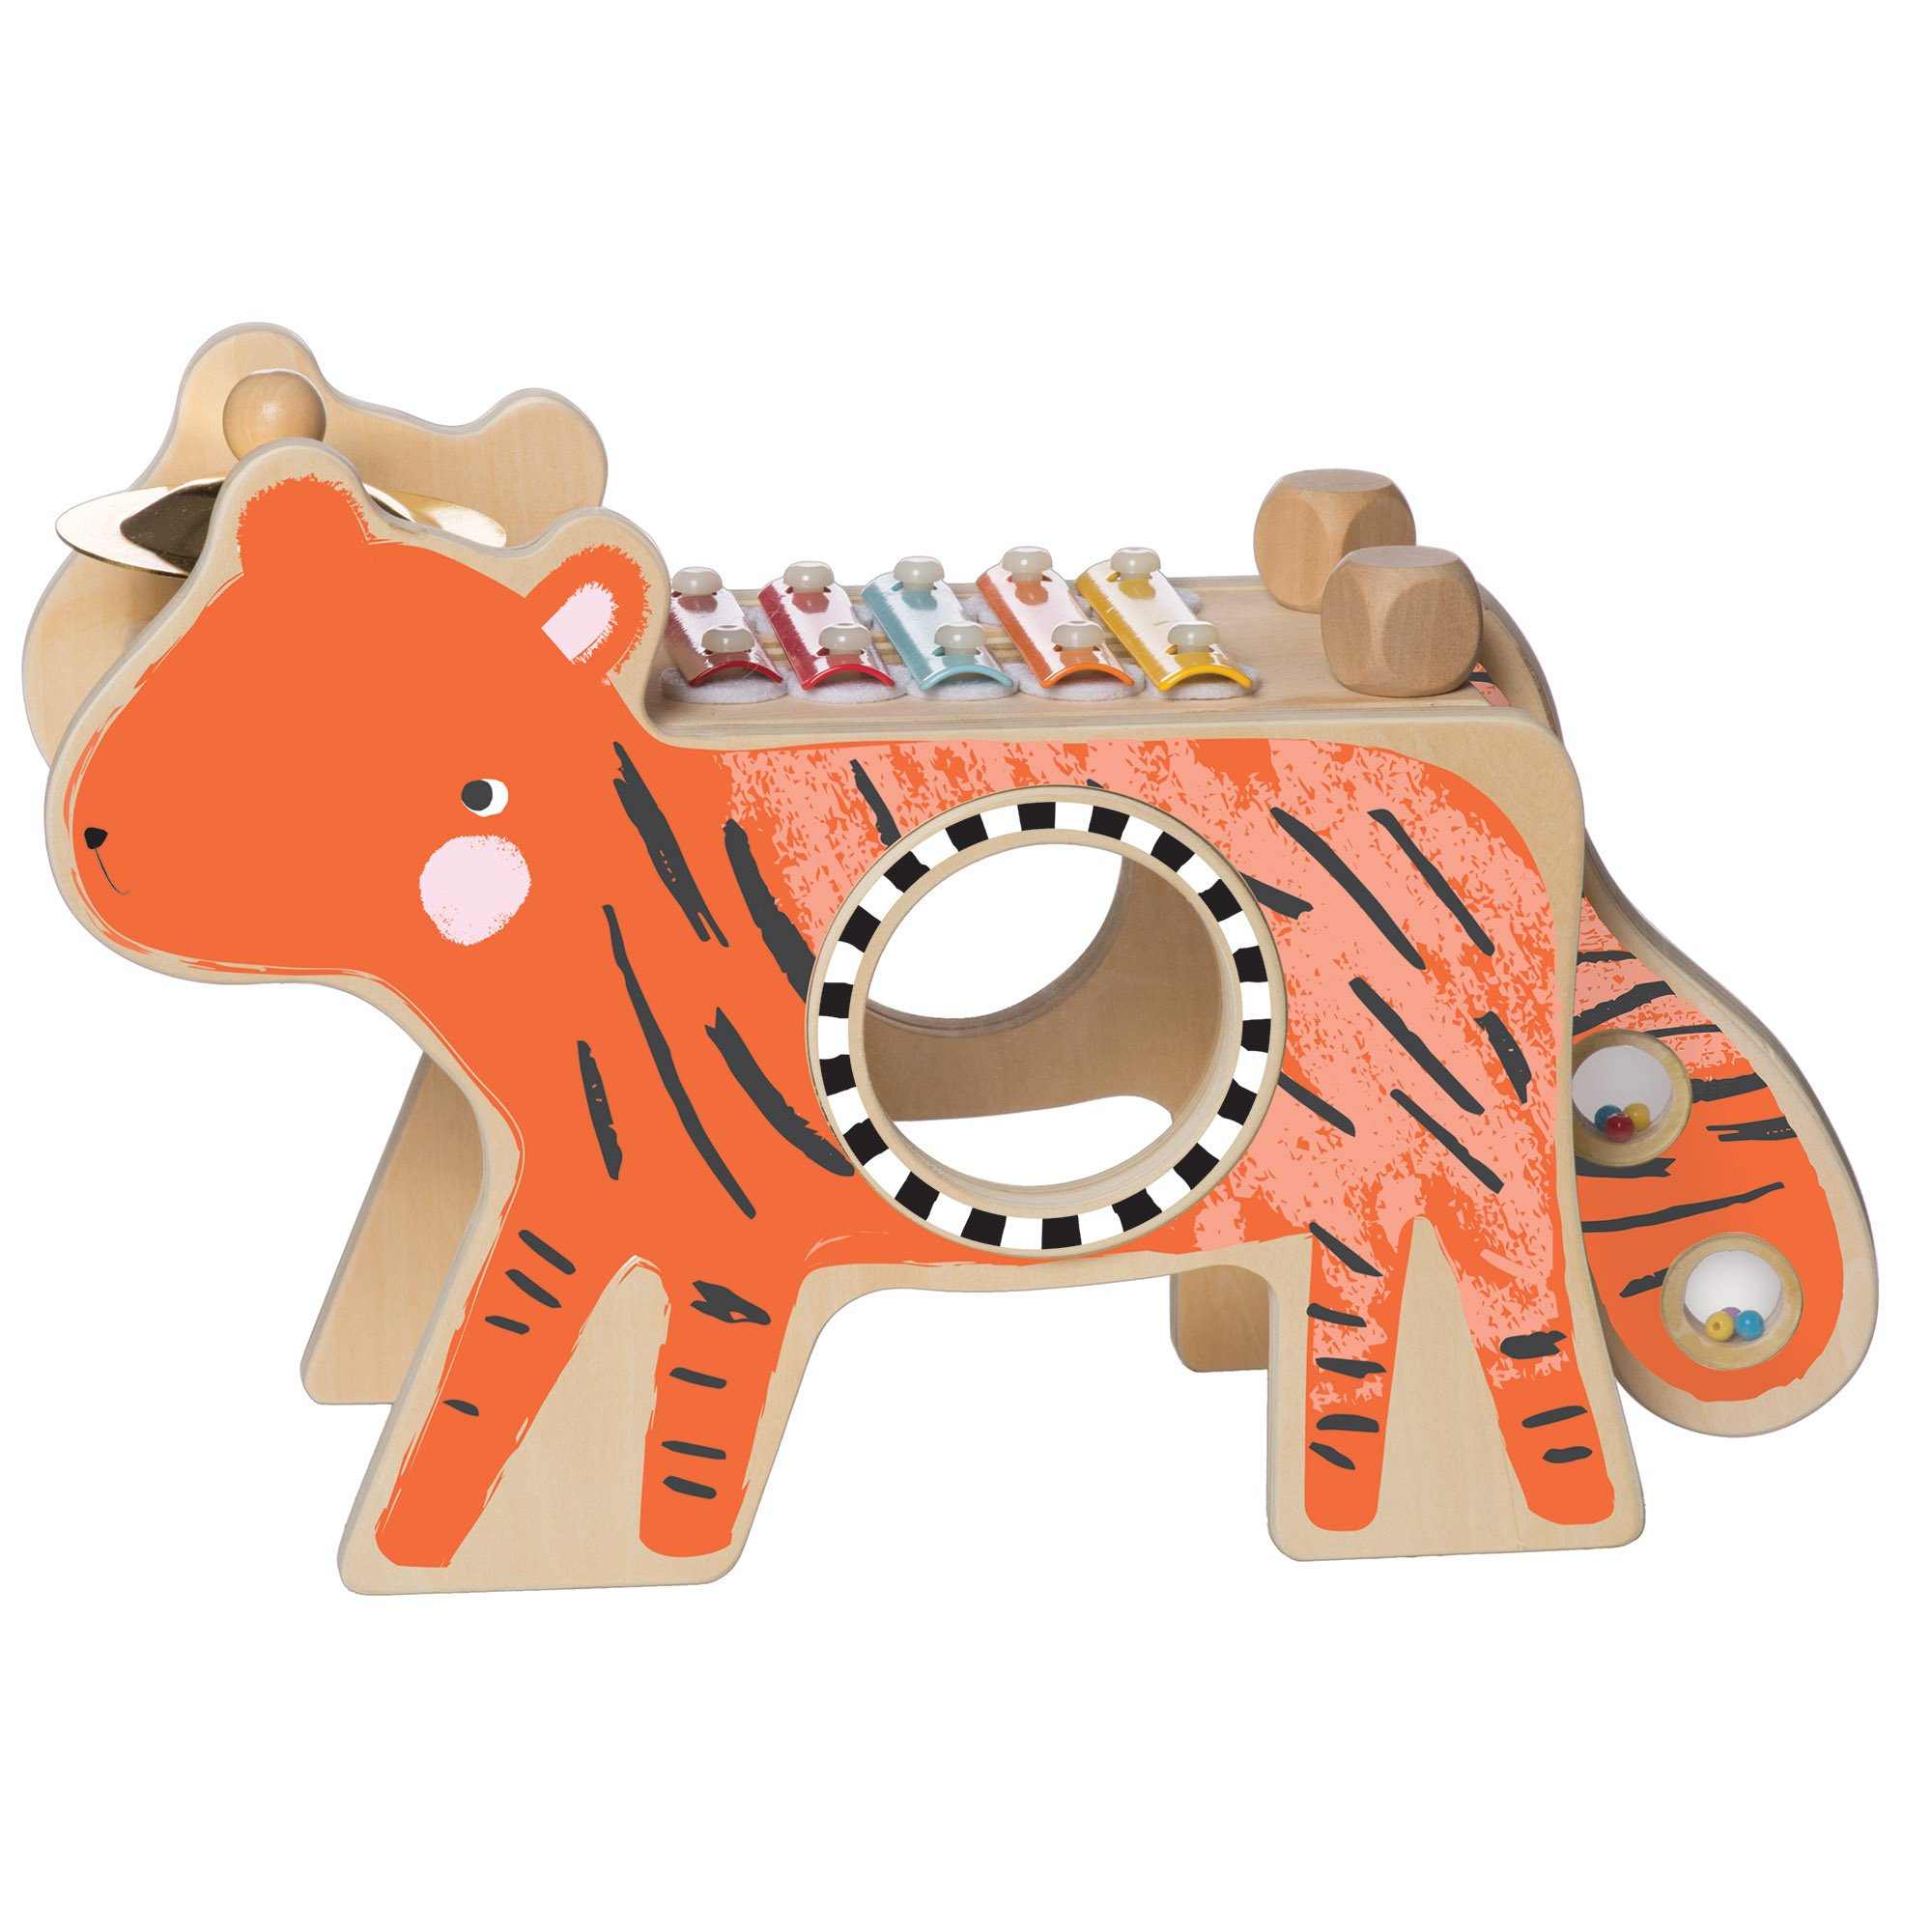 Manhattan Toy Musical Tiger Wooden Instrument for Toddlers with Xylophone, Drumsticks, Cymbal and Maraca by Manhattan Toy